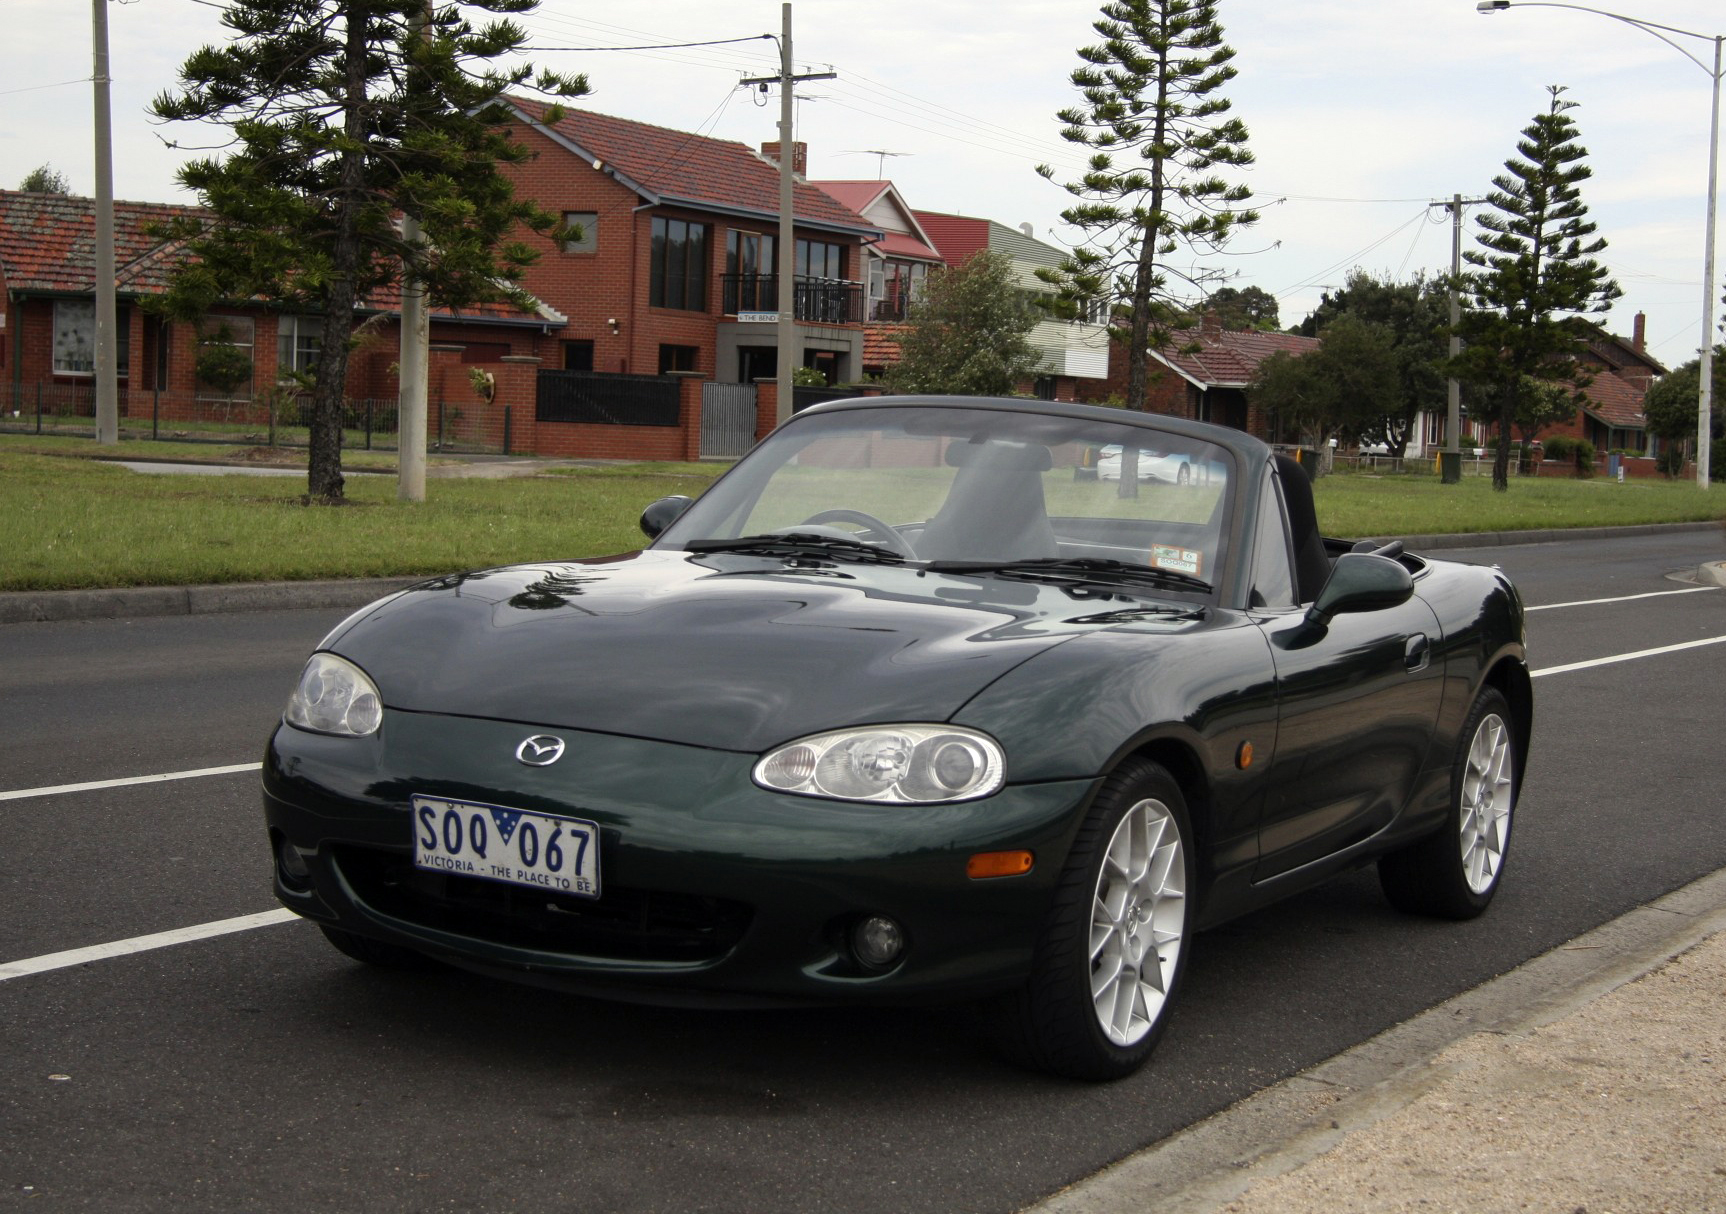 2001 Mazda MX5 NB Series II | Flickr - Photo Sharing!